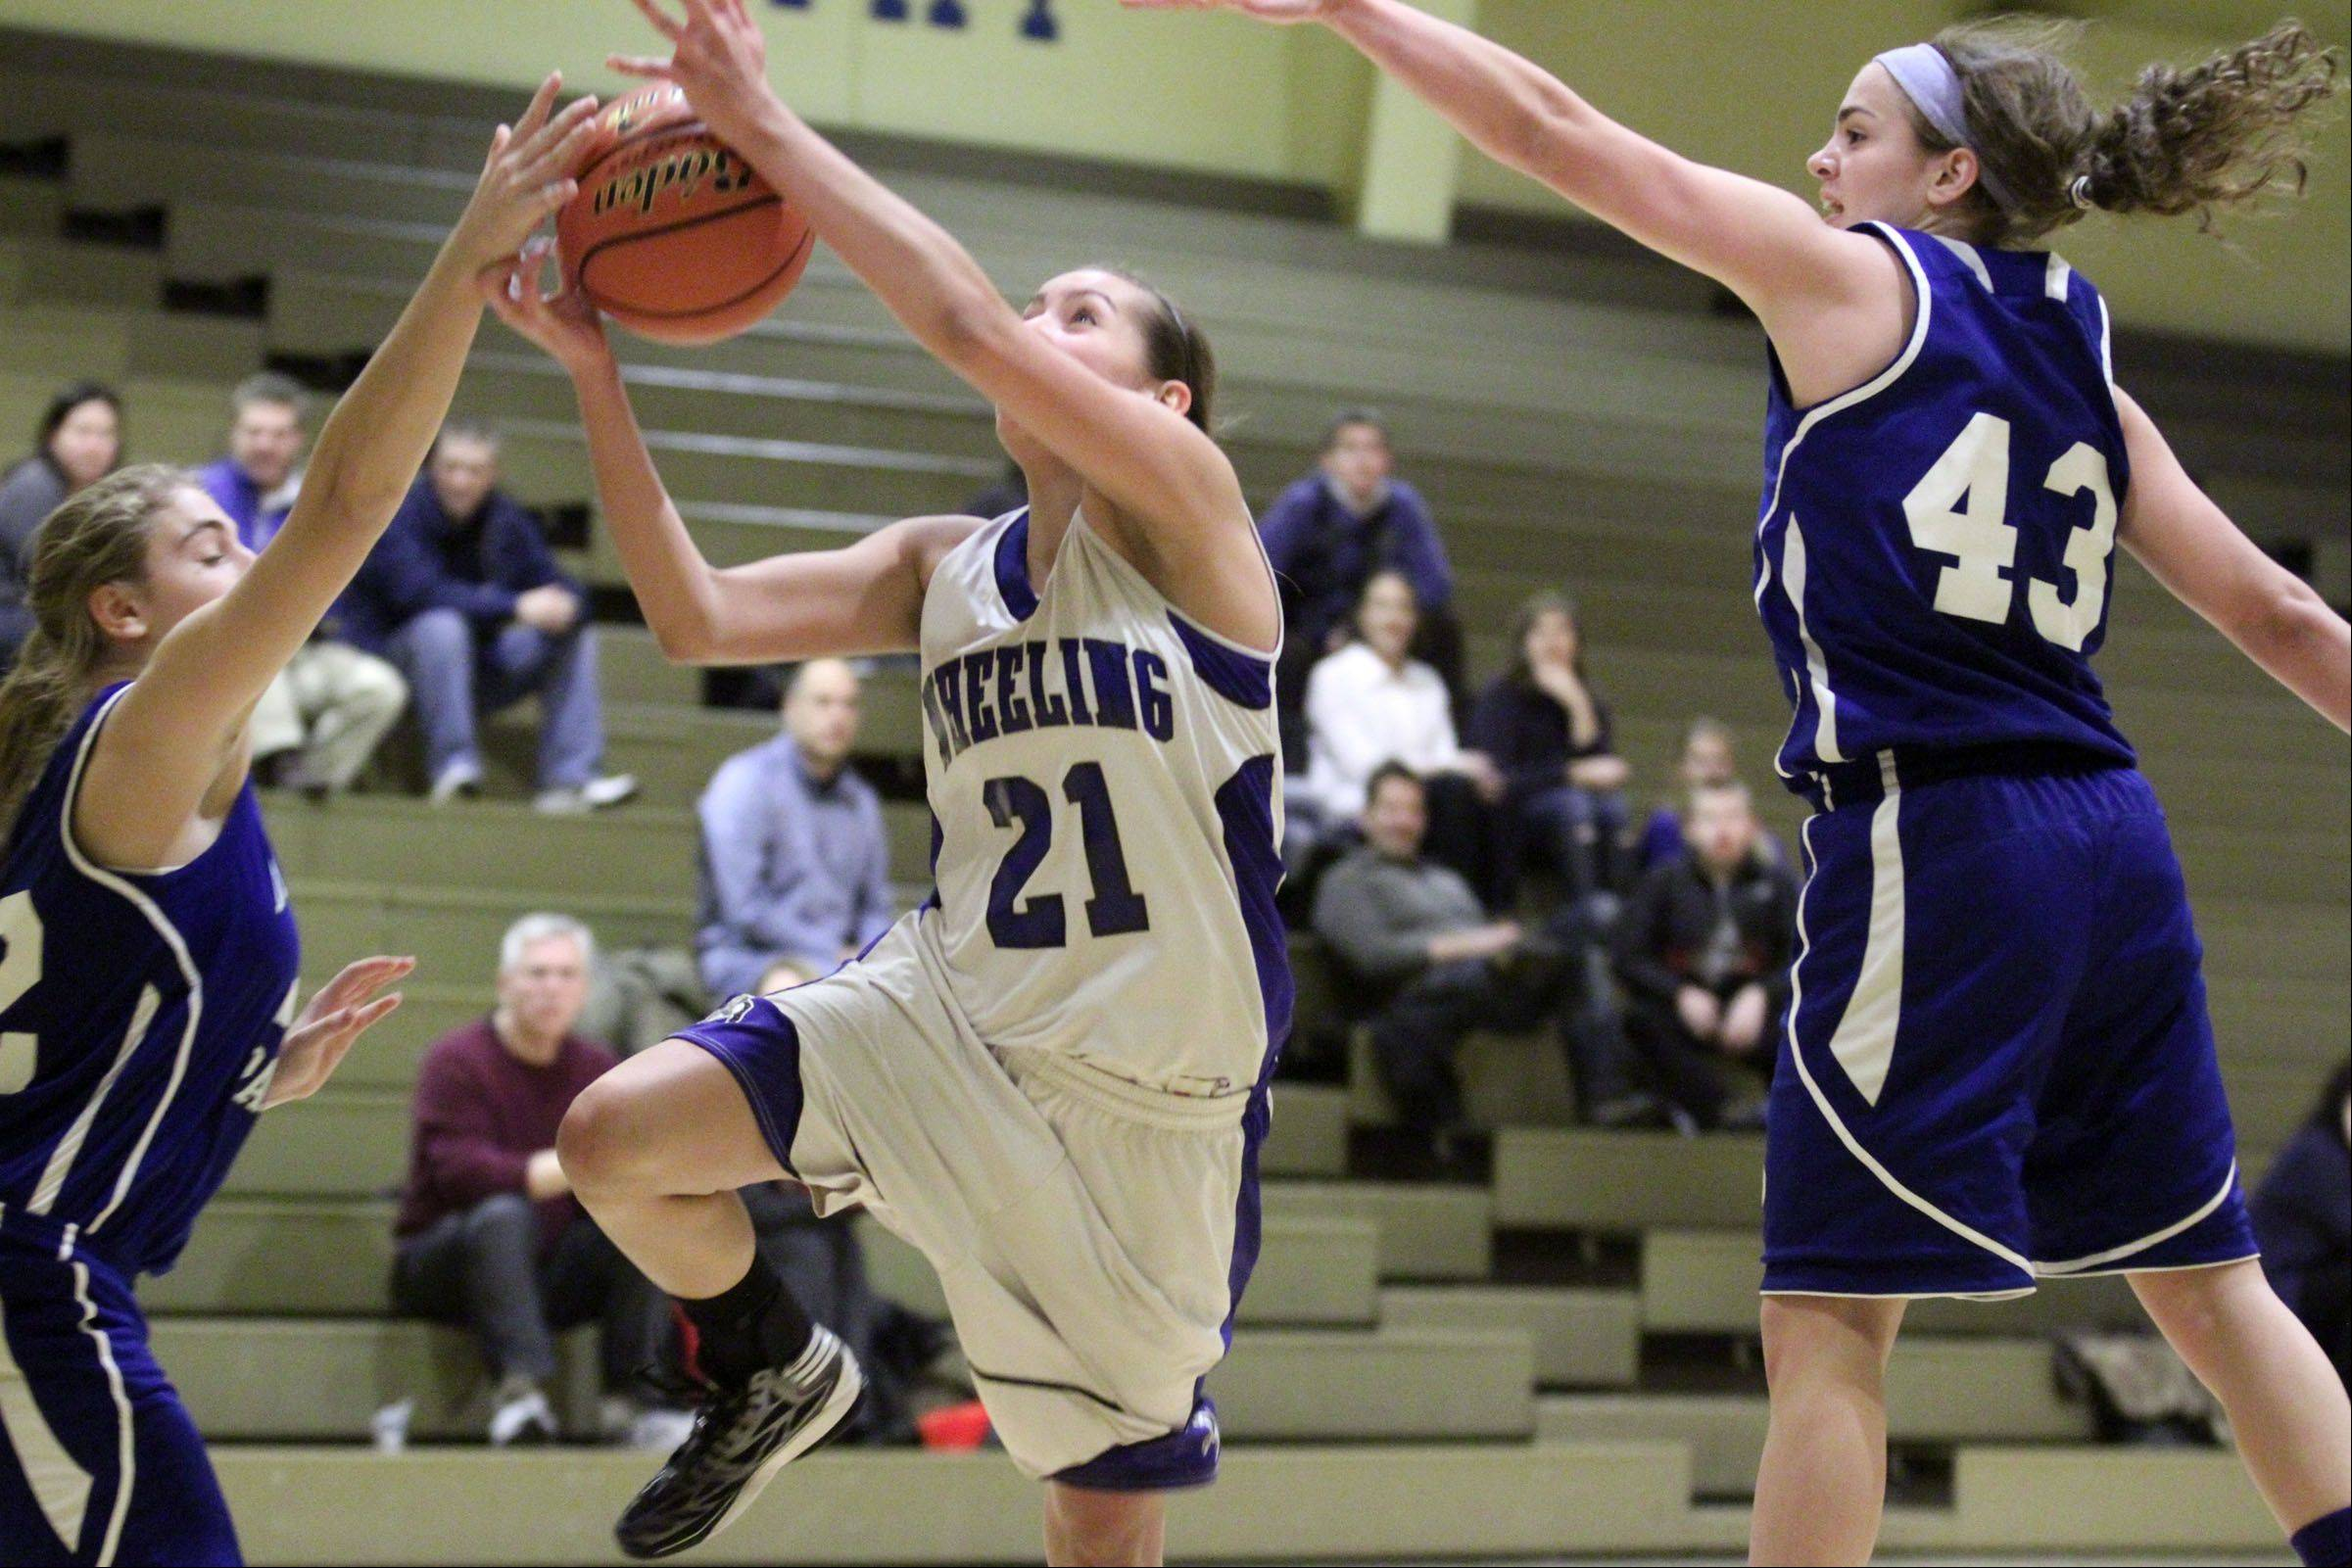 Wheeling's Deanna Kuzmanic drives lane for layup between Highland Park defenders.